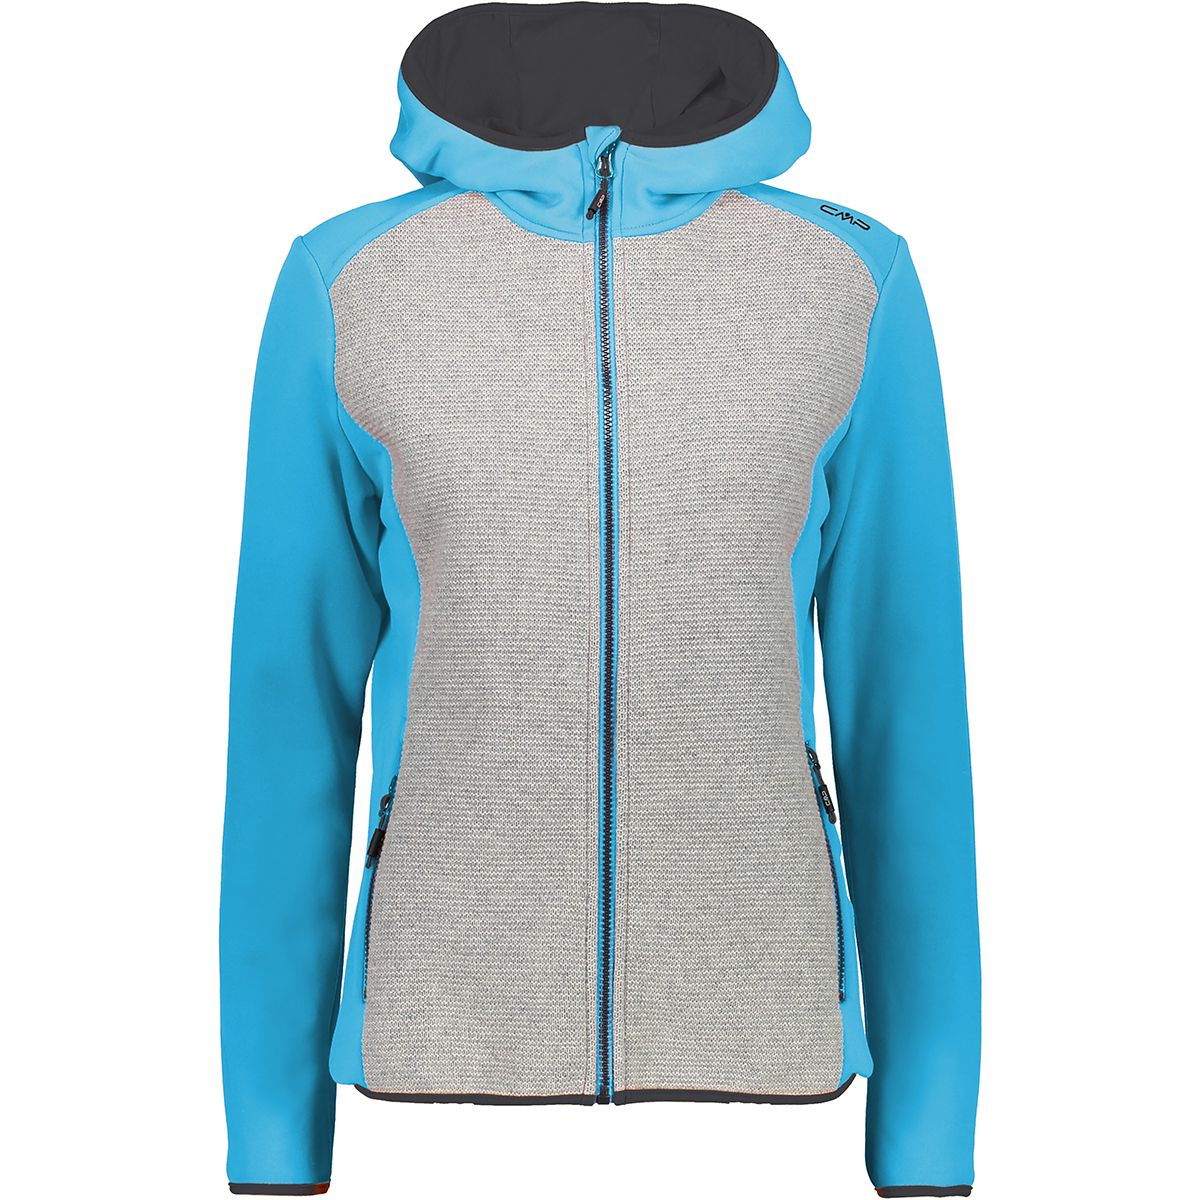 CMP Damen Stretch Tech Jacke (Größe L, Blau) | Fleecejacken > Damen